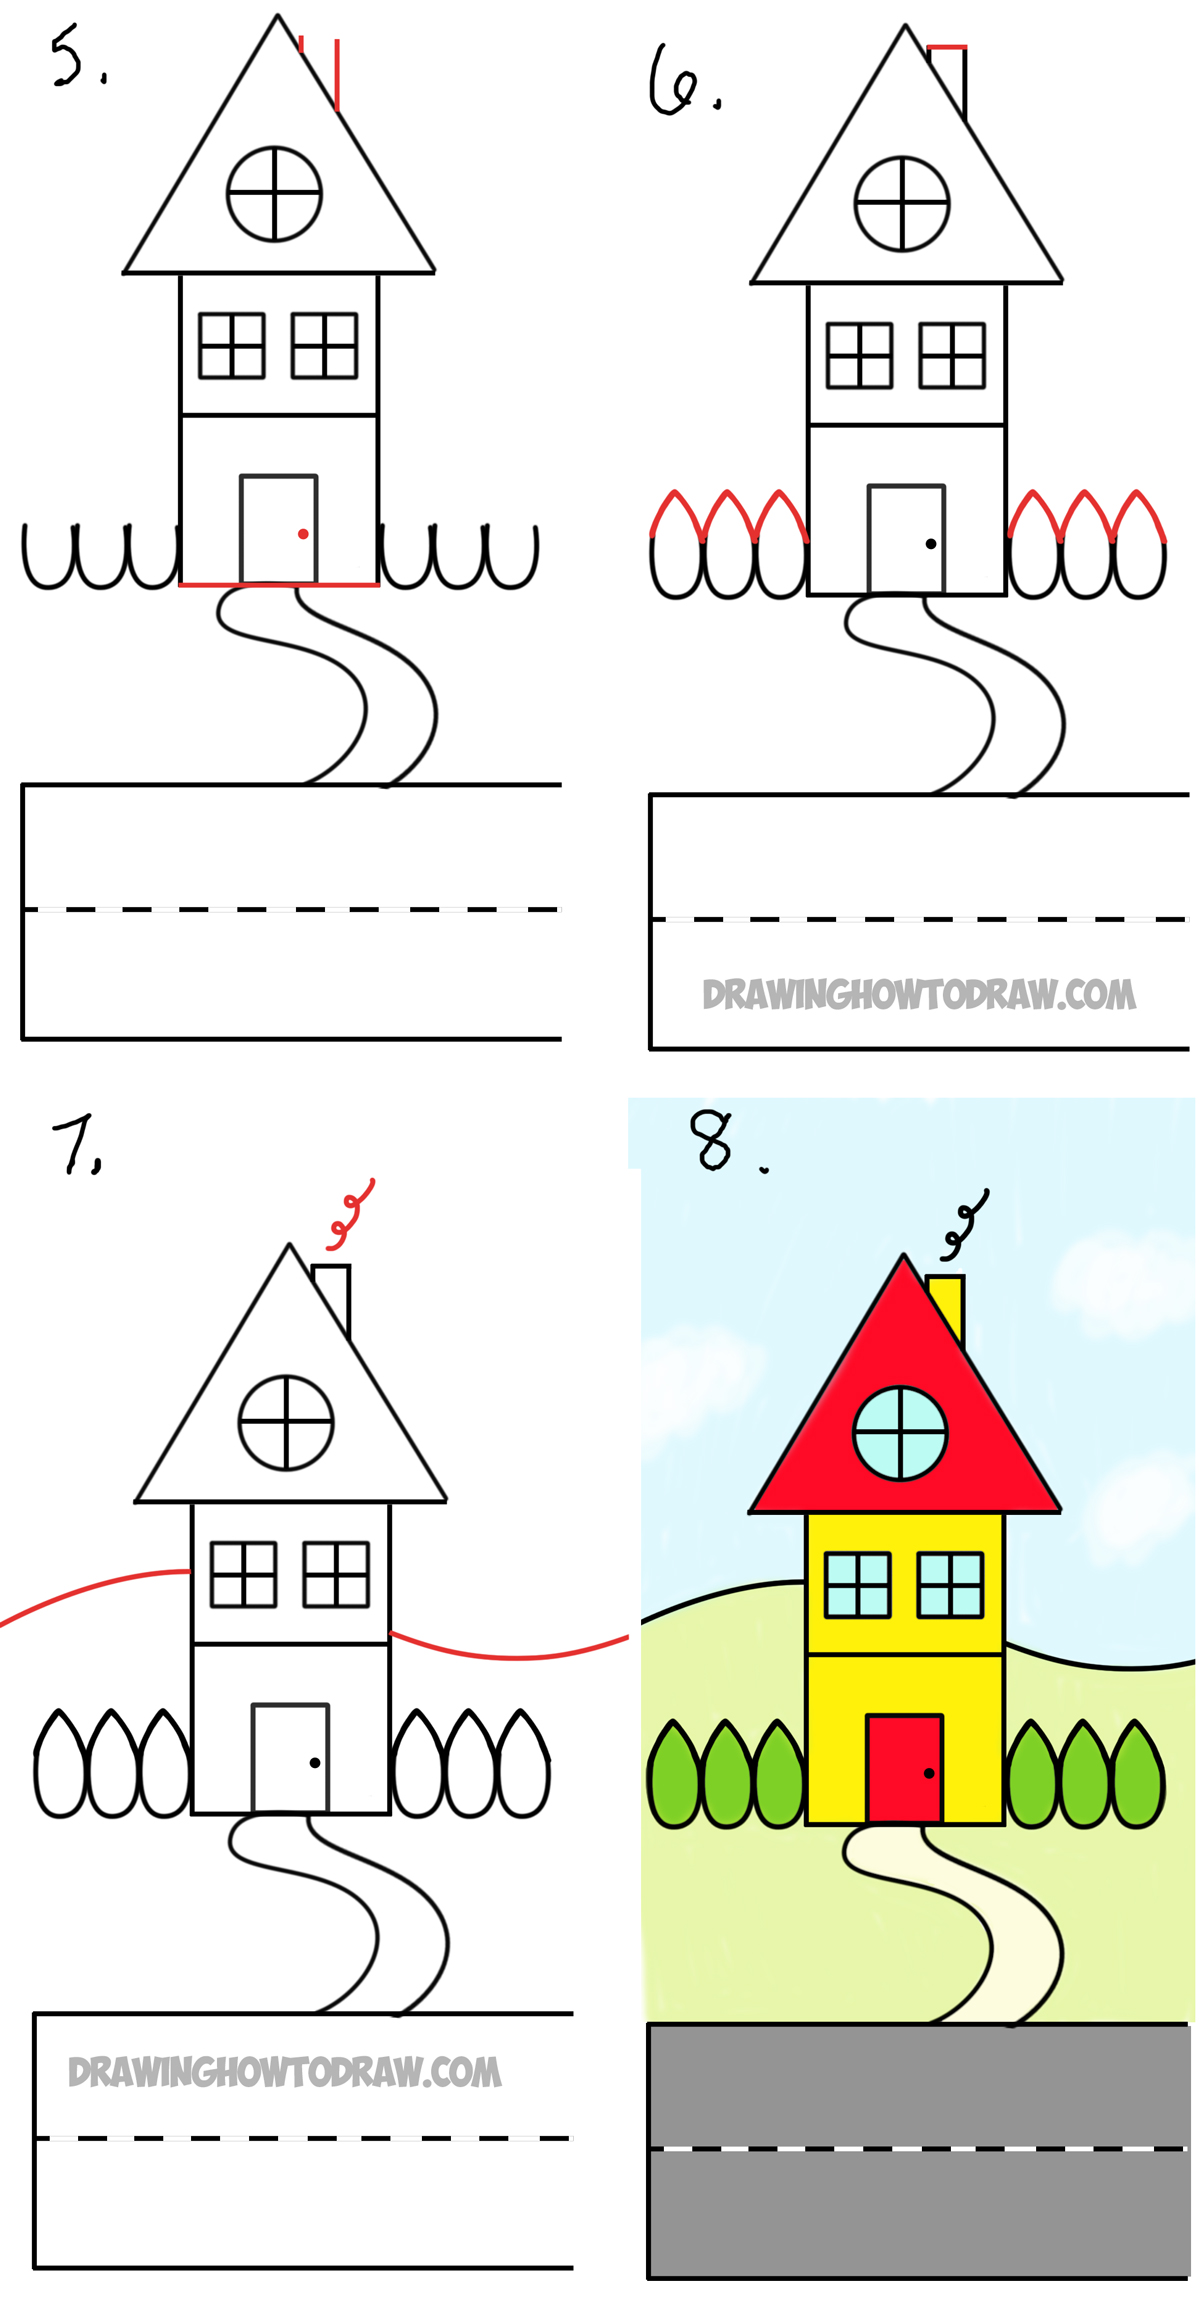 How to draw a cartoon house from the word house an easy for How to draw a two story house step by step